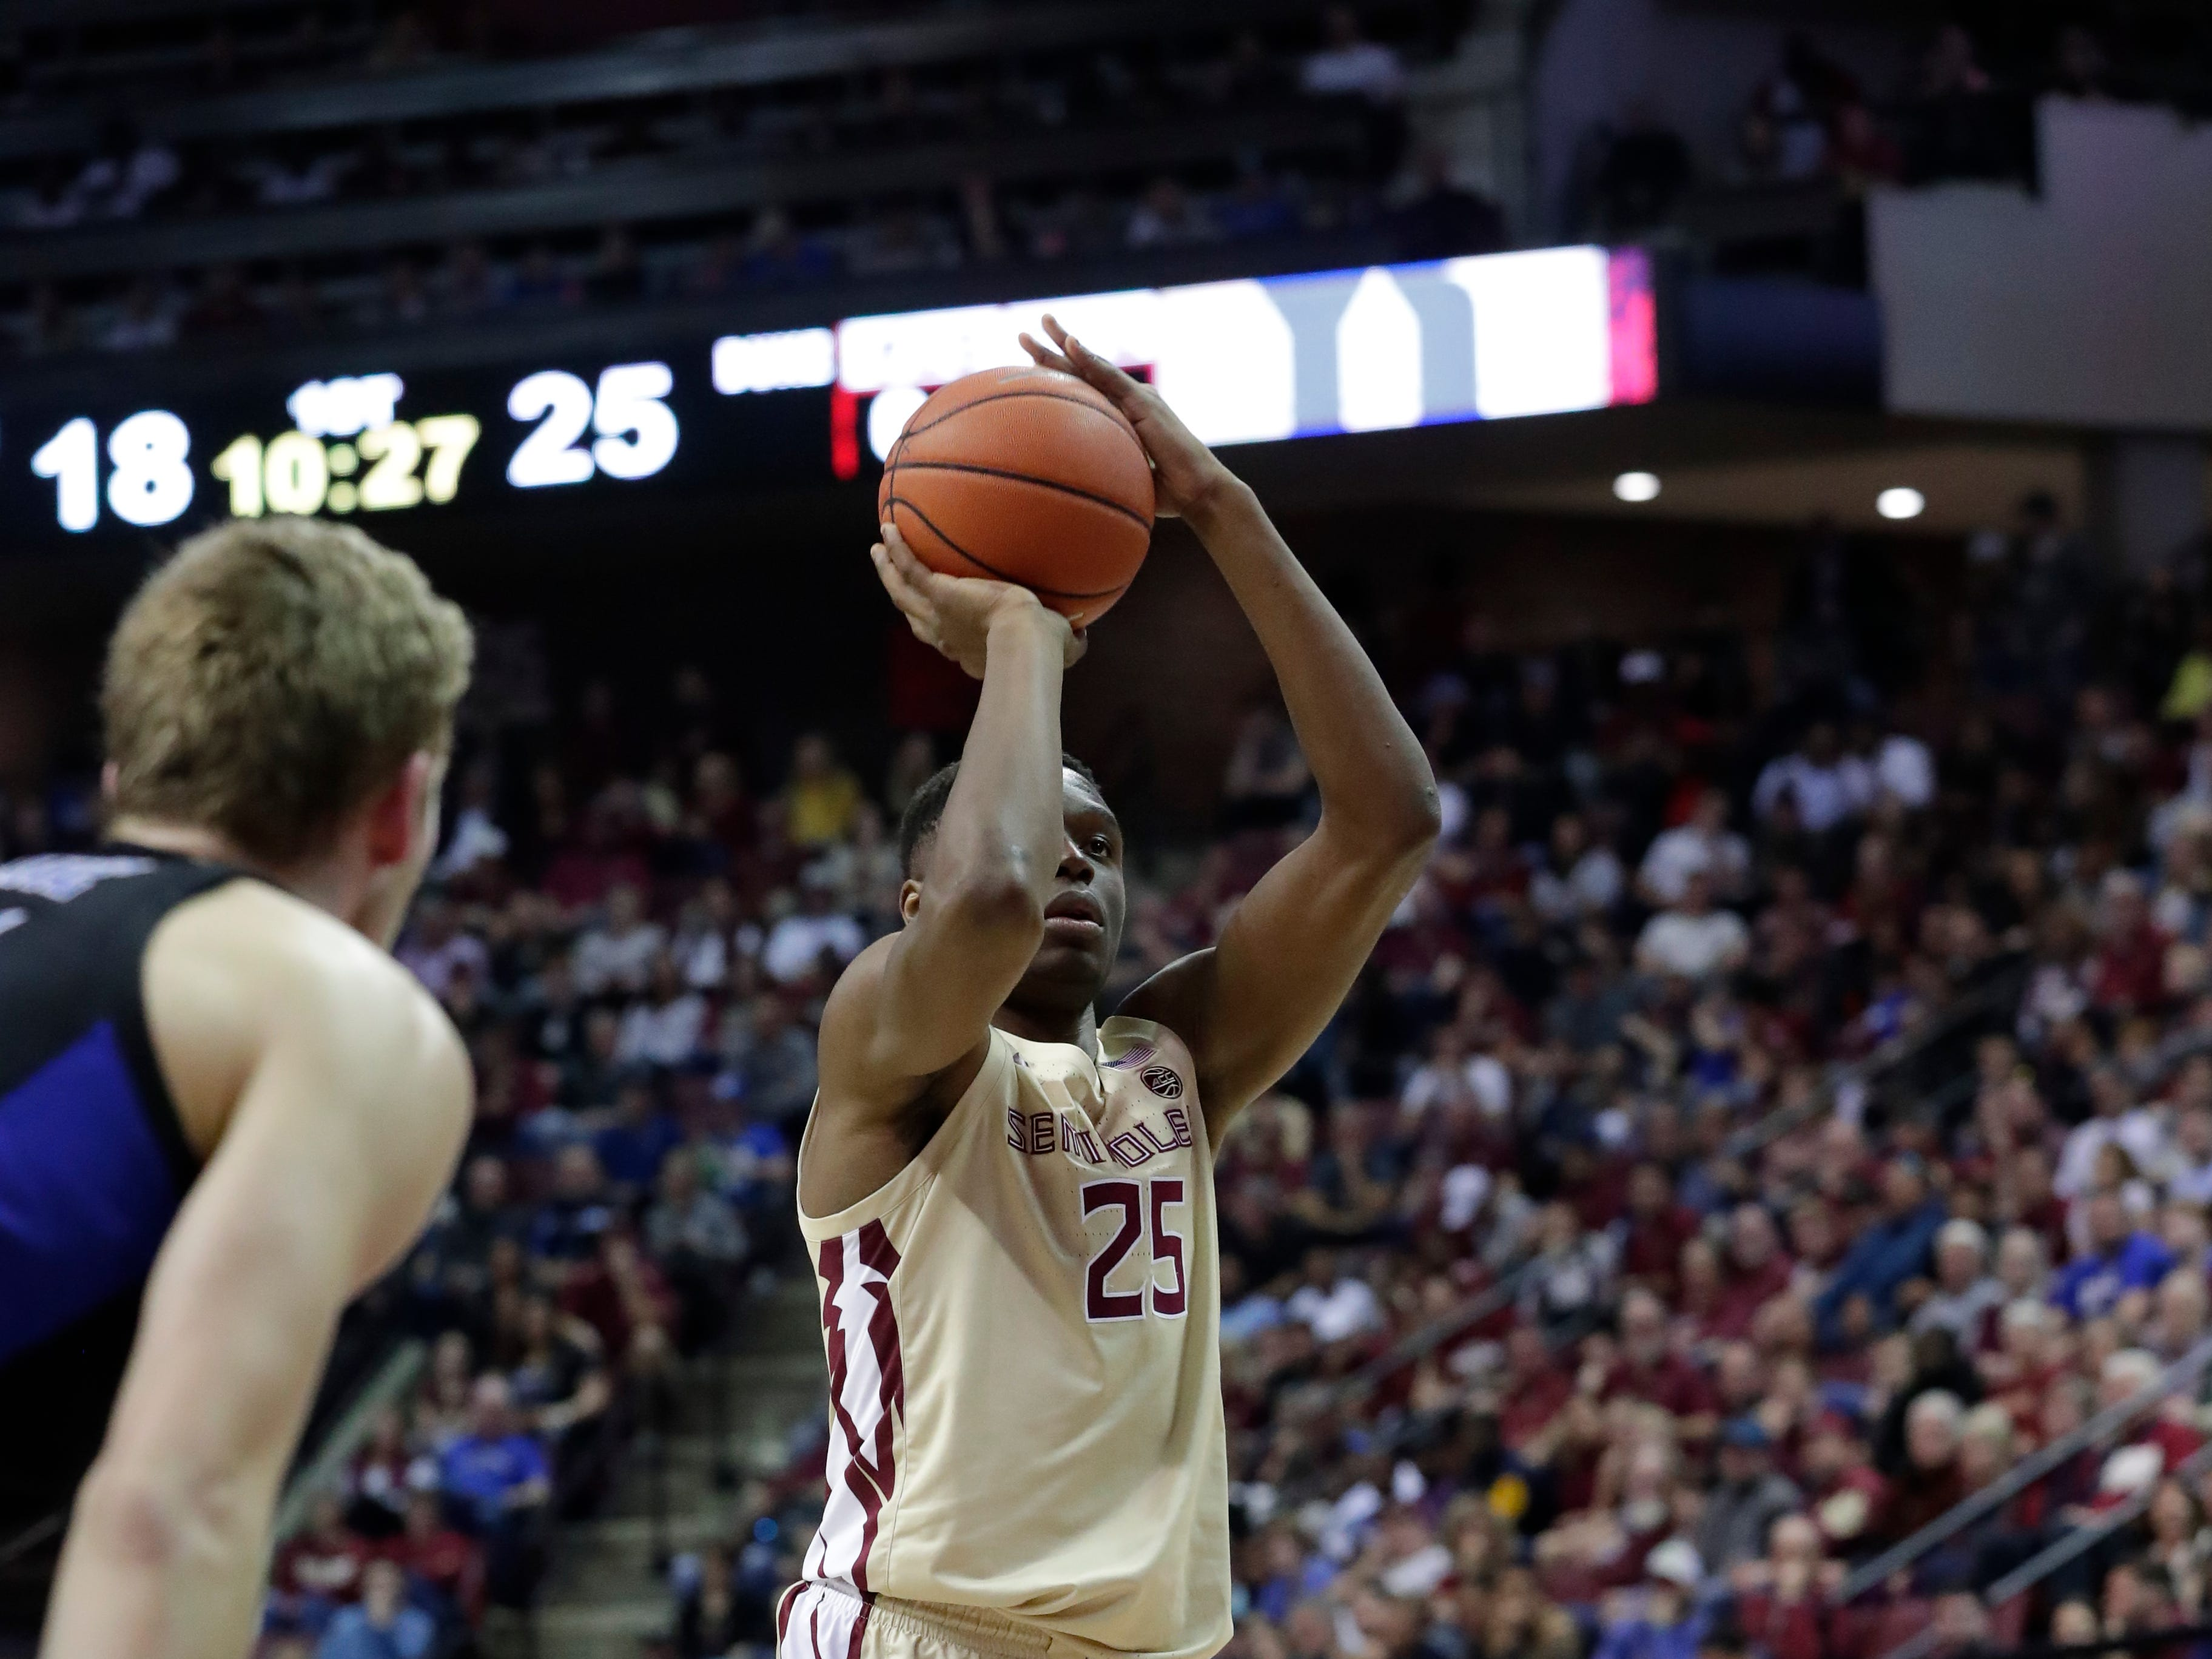 Ranked 13 in the ACC, the Florida State Seminoles host the number 1 team, the Duke Blue Devils, at the Tucker Civic Center, Saturday, Jan. 12, 2019. Florida State Seminoles forward Mfiondu Kabengele (25) shoots a free throw.